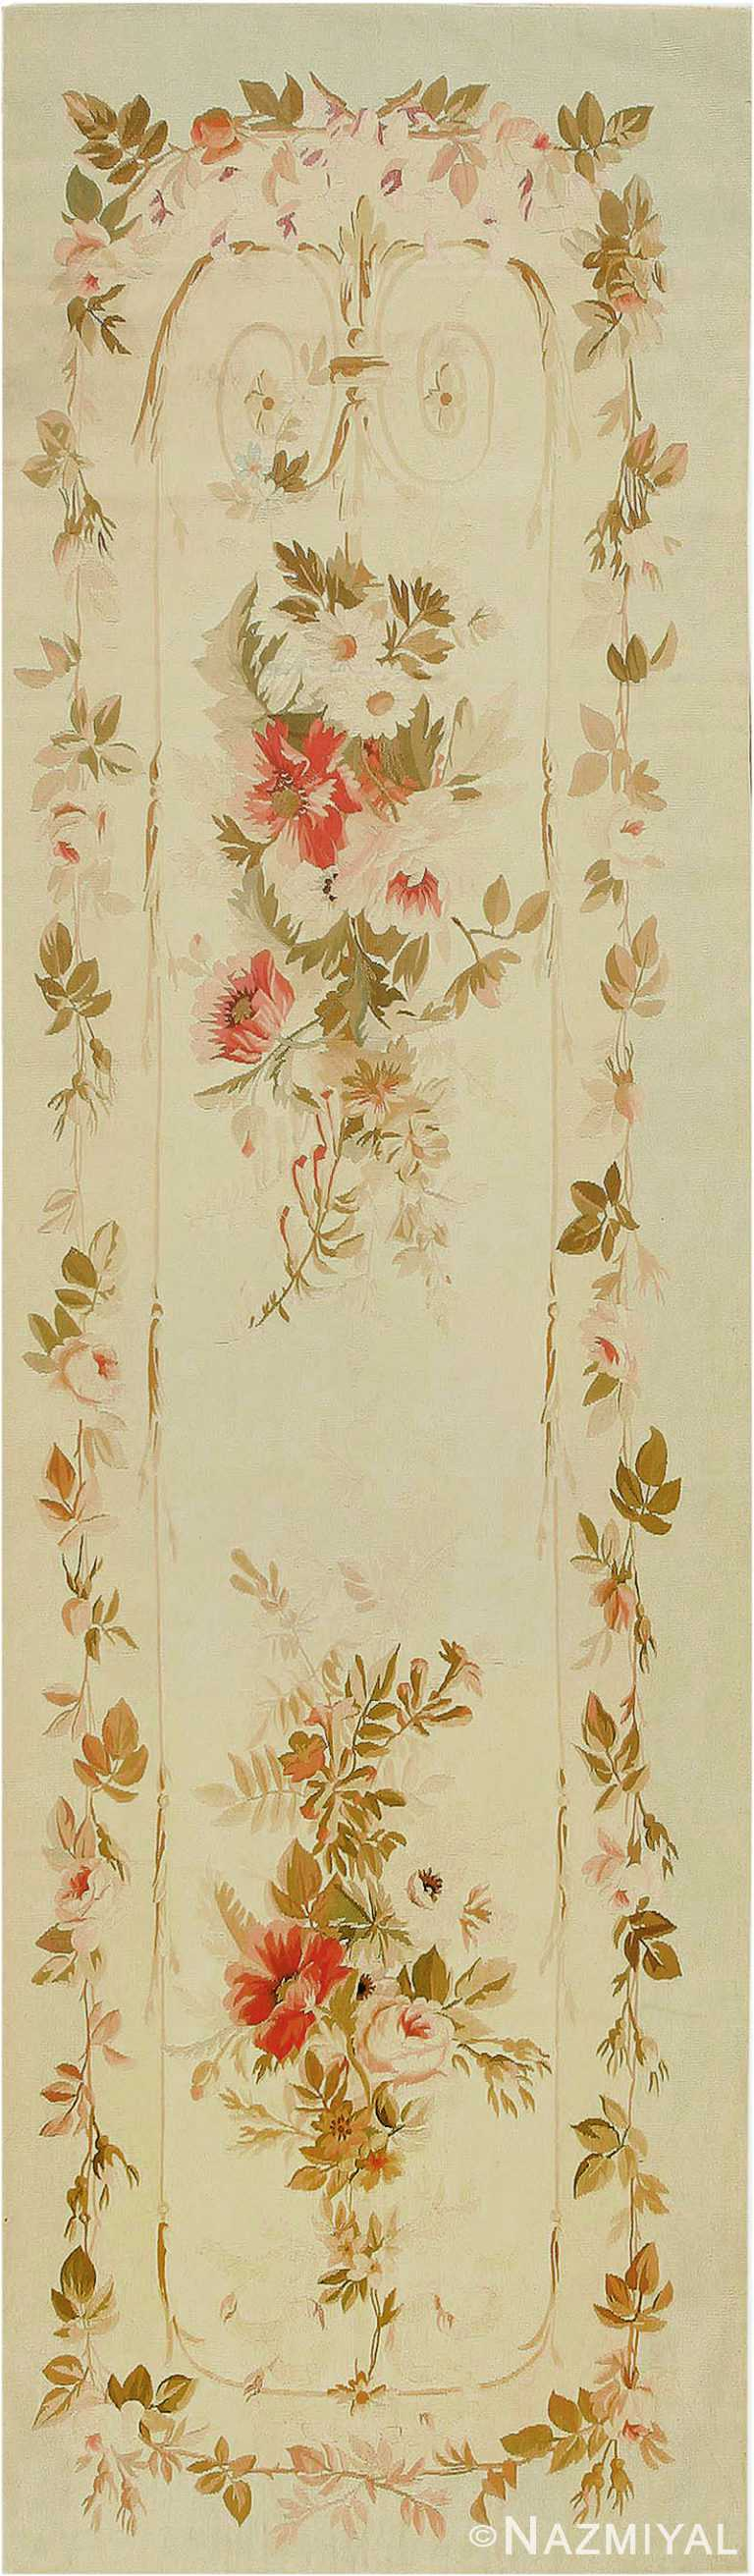 Antique French Aubusson Rug #2854 by Nazmiyal Antique Rugs